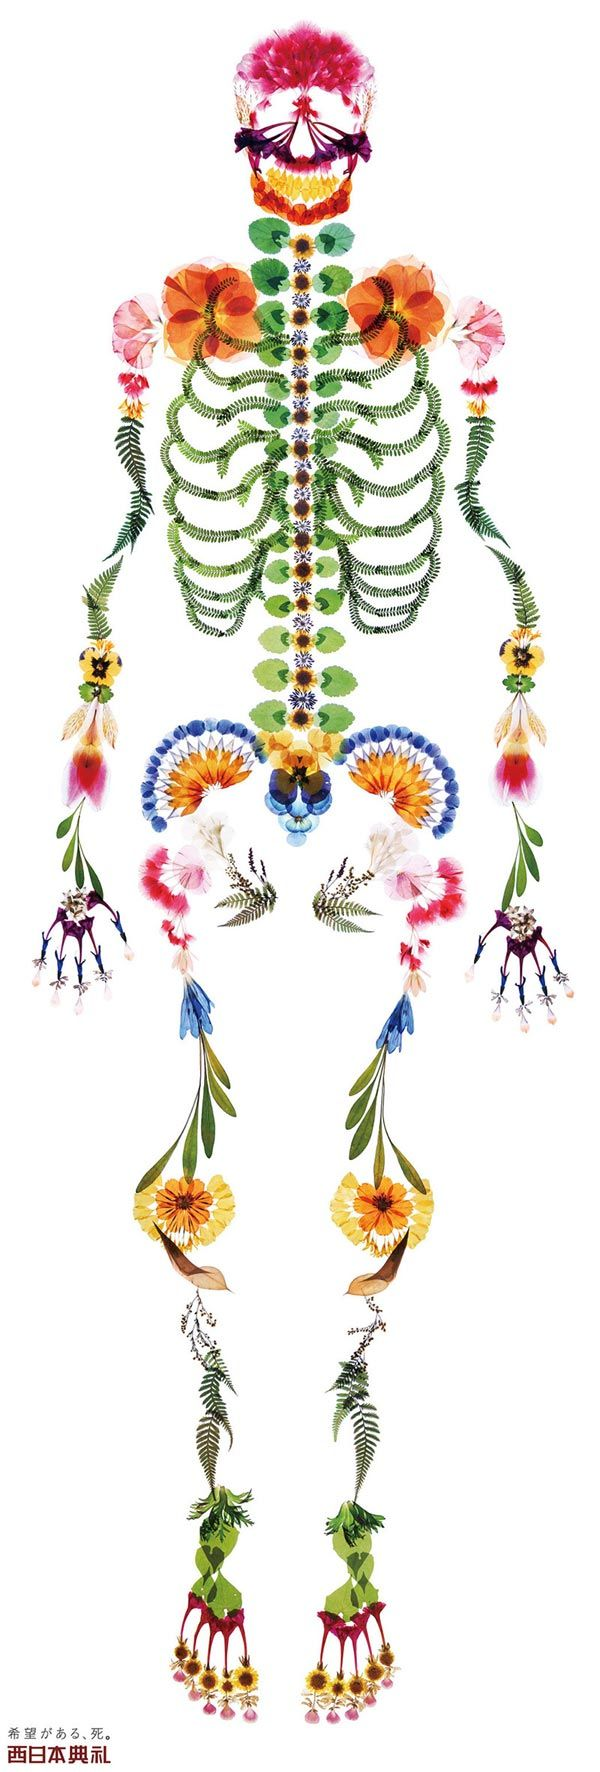 Ad for Japanese funeral home using ife-size Human Skeleton Made of Flowers (after tsunami)